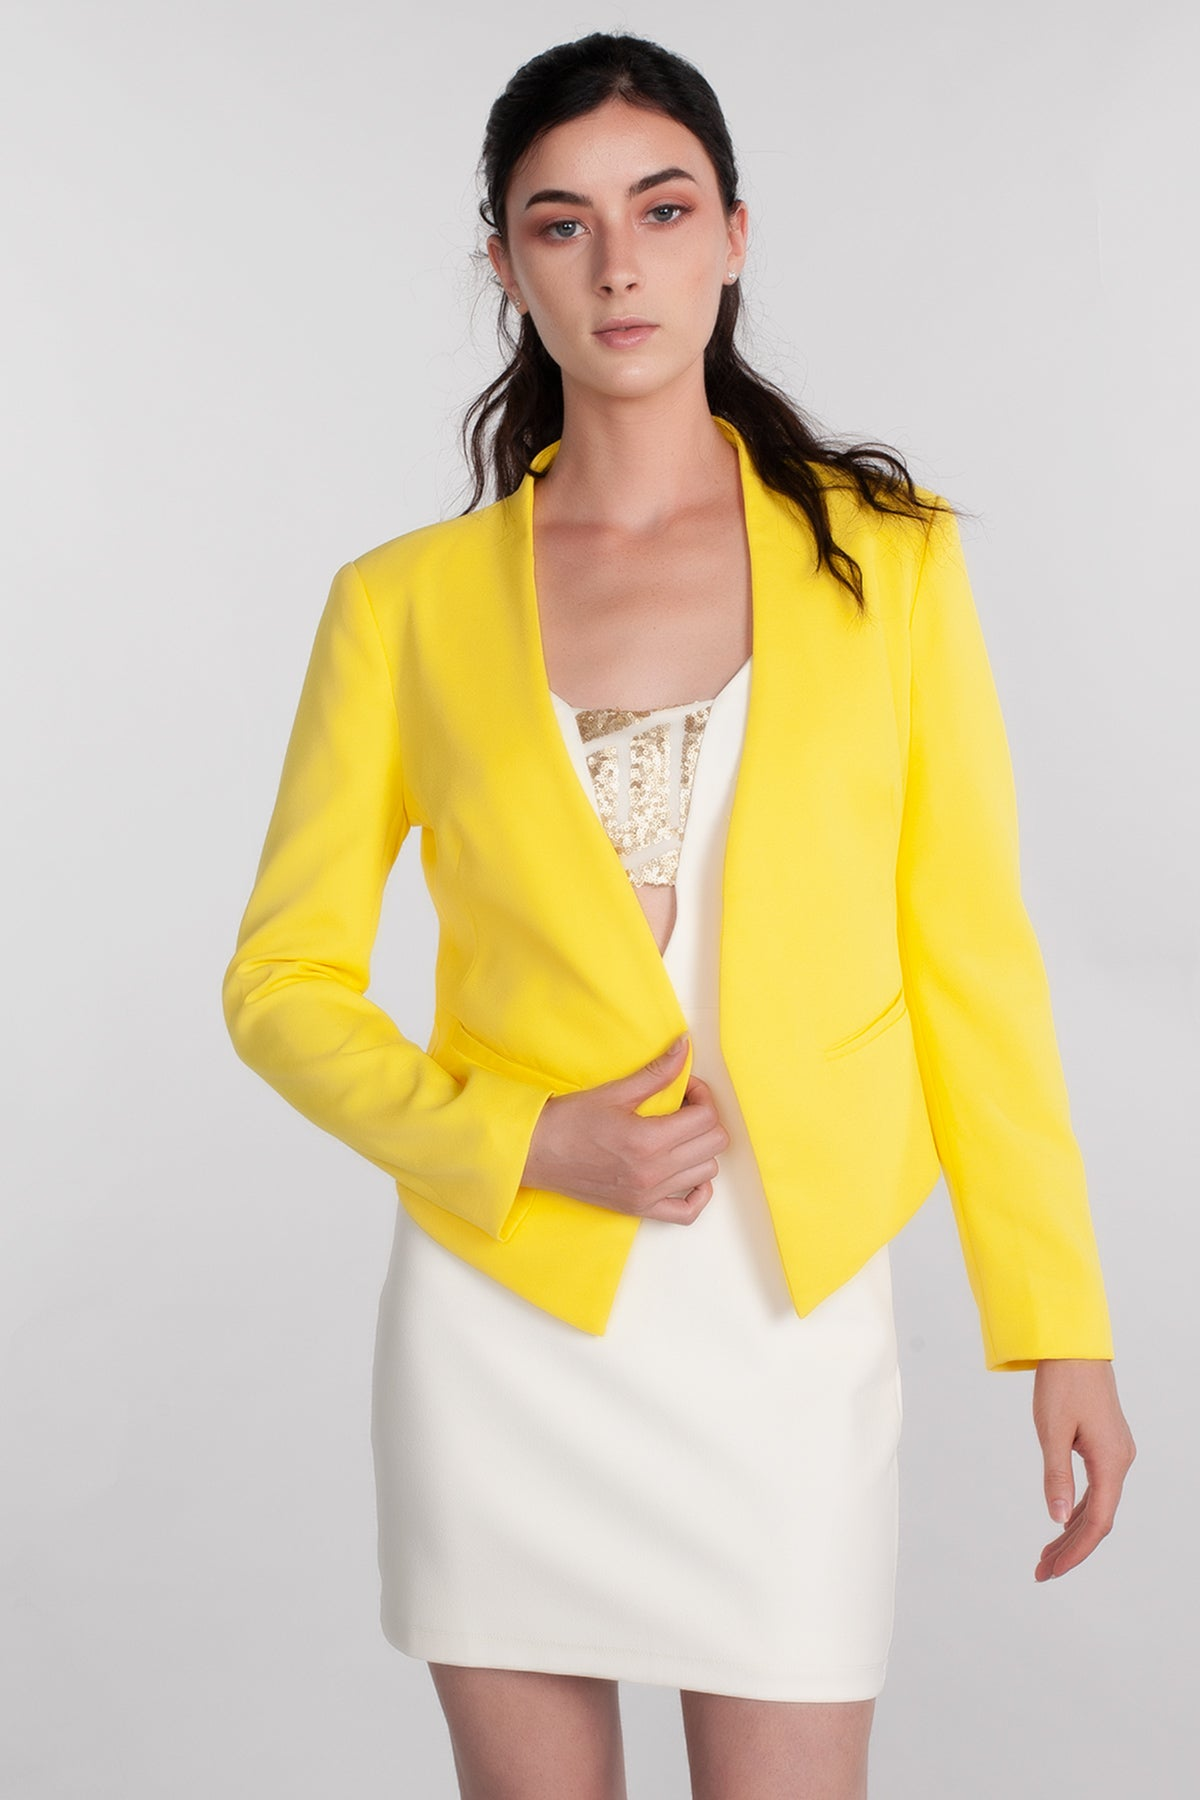 Blazer, Cape, Cardigan, Sweater, Jacket, Cut Off Top, Outer Wear, Winter, Summer Outfit, Yellow Outfit, Cover Up, Pastels, Spring, Casual Wear